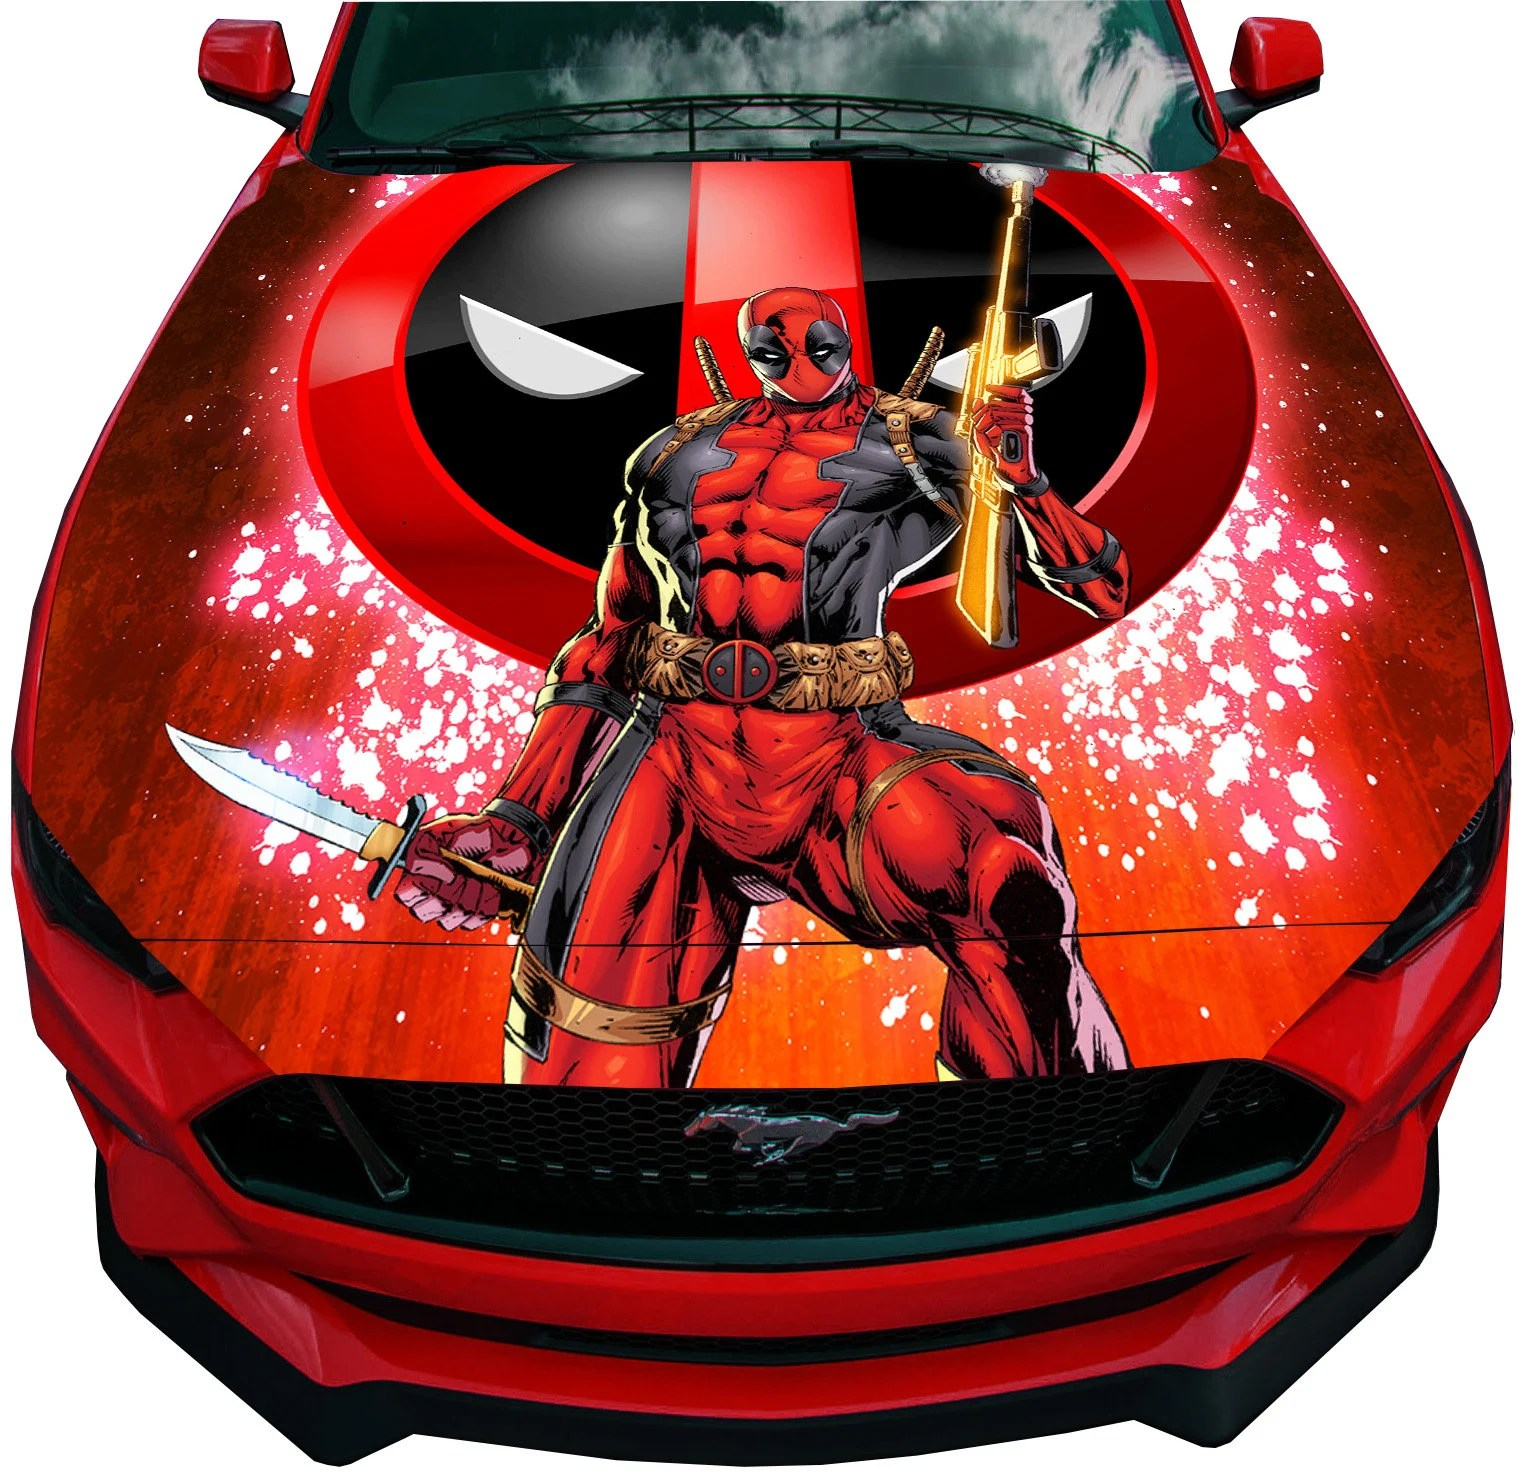 Deadpool Bettwäsche Vinyl Car Hood Bonnet Deadpool With Logo Decal Sticker Fit Any Auto